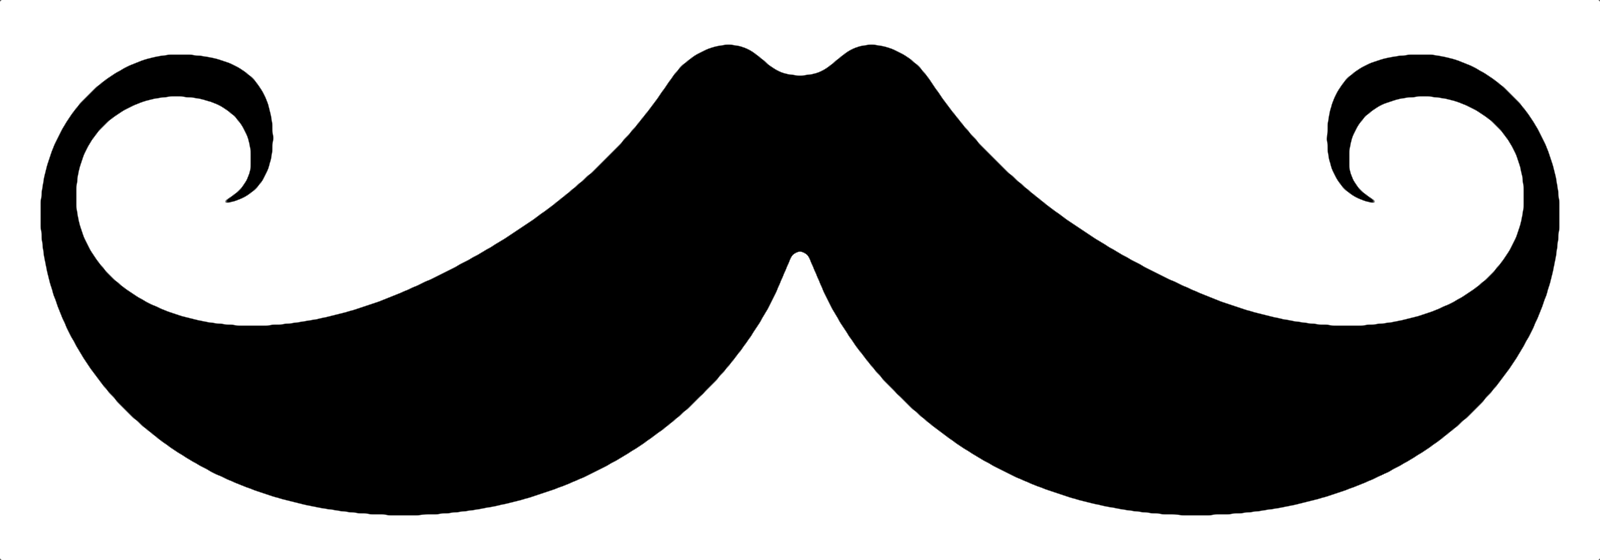 hight resolution of brown hair clipart mexican mustache pencil and in color brown